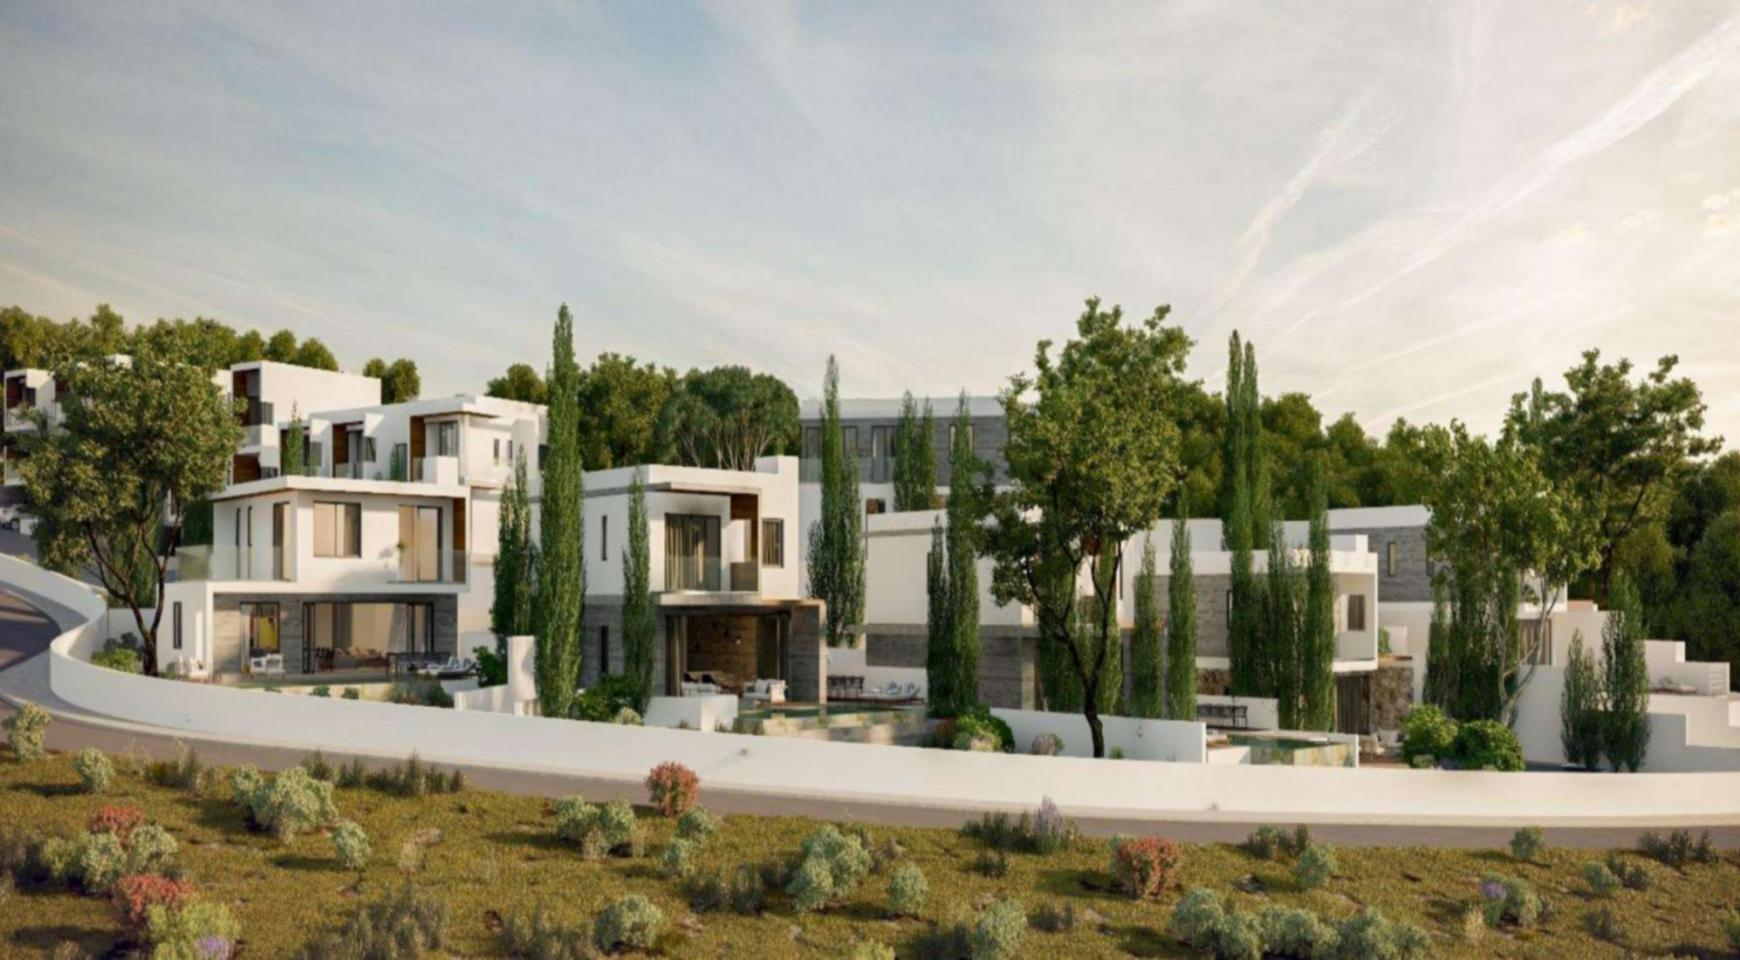 3 Bedroom Villa in a New Project in Agios Tychonas - 10